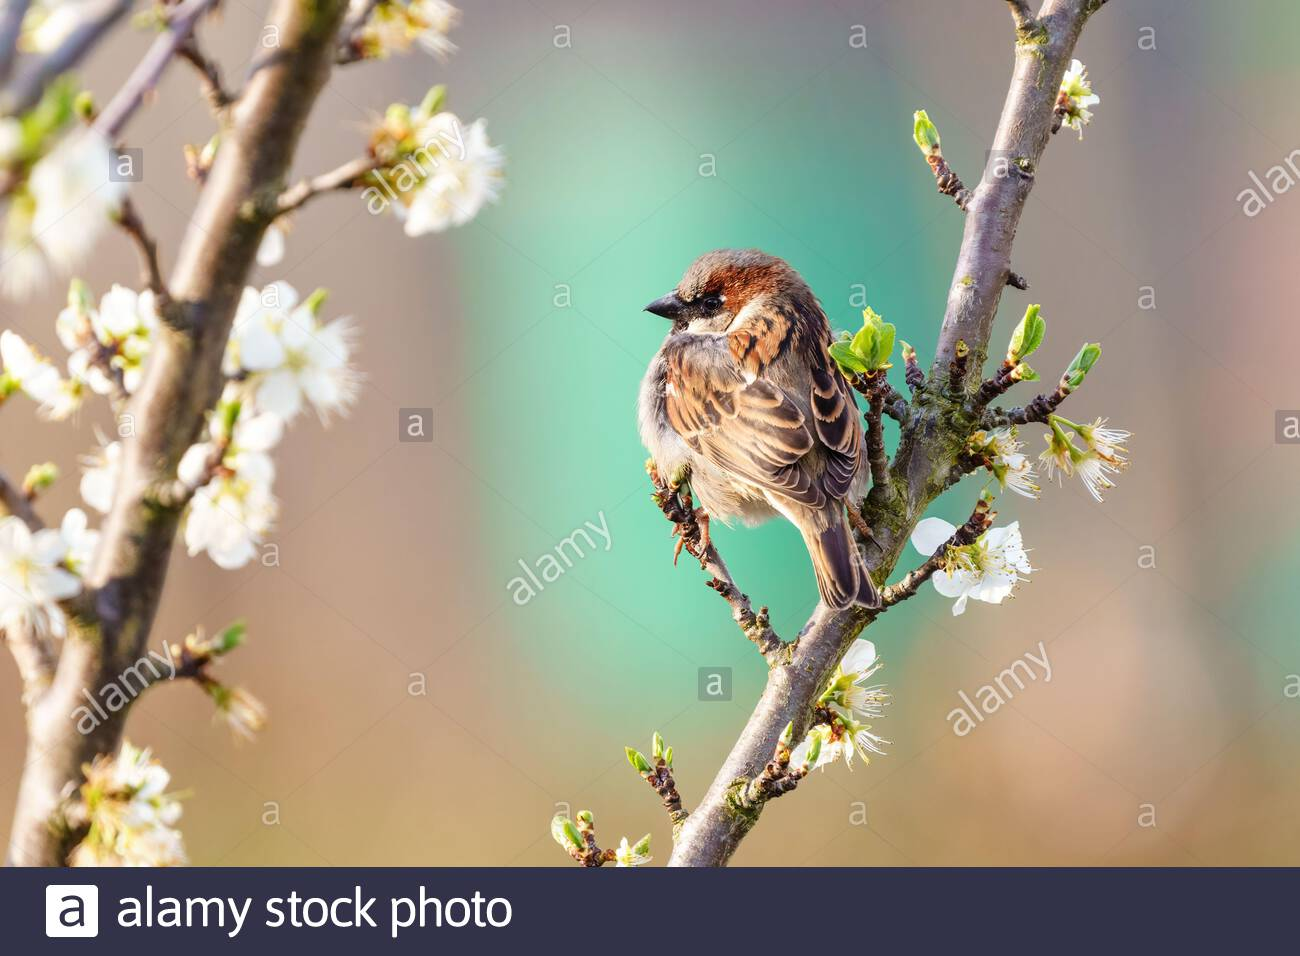 House sparrow (Passer domesticus) perched in a tree in spring bloom, taken in the UK Stock Photo